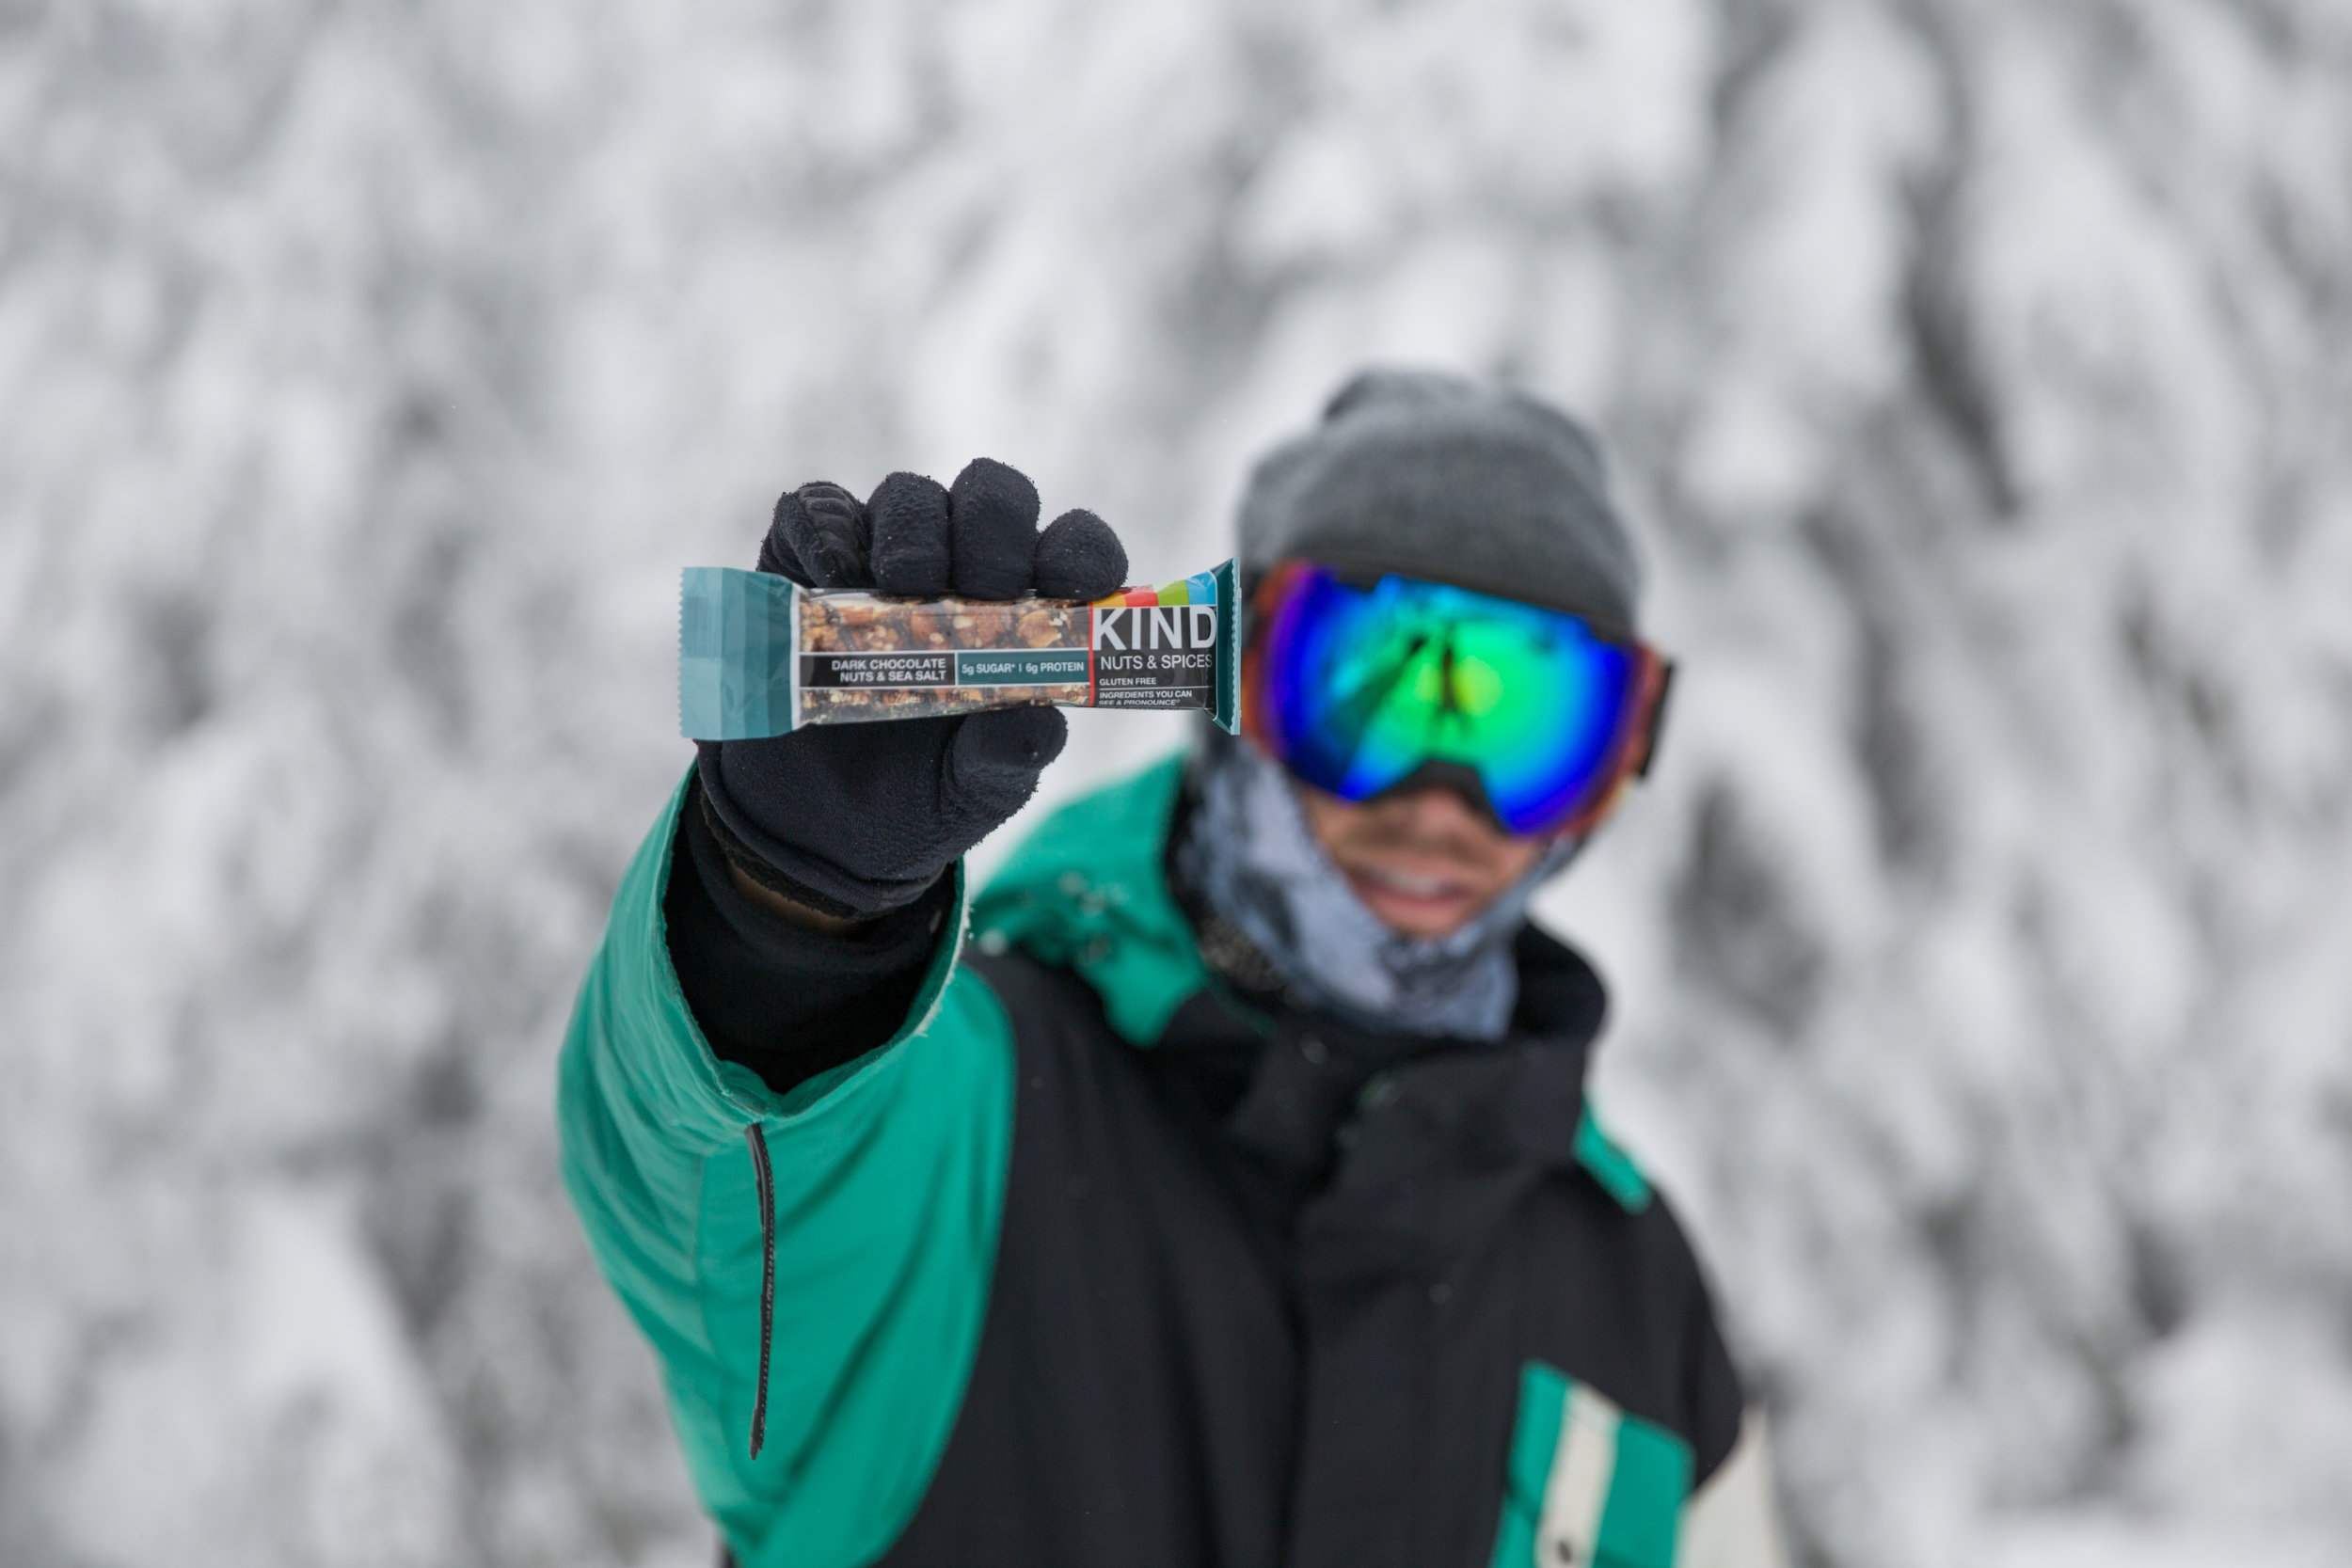 College students represented and handed out KIND Bars in the mountains this winter.